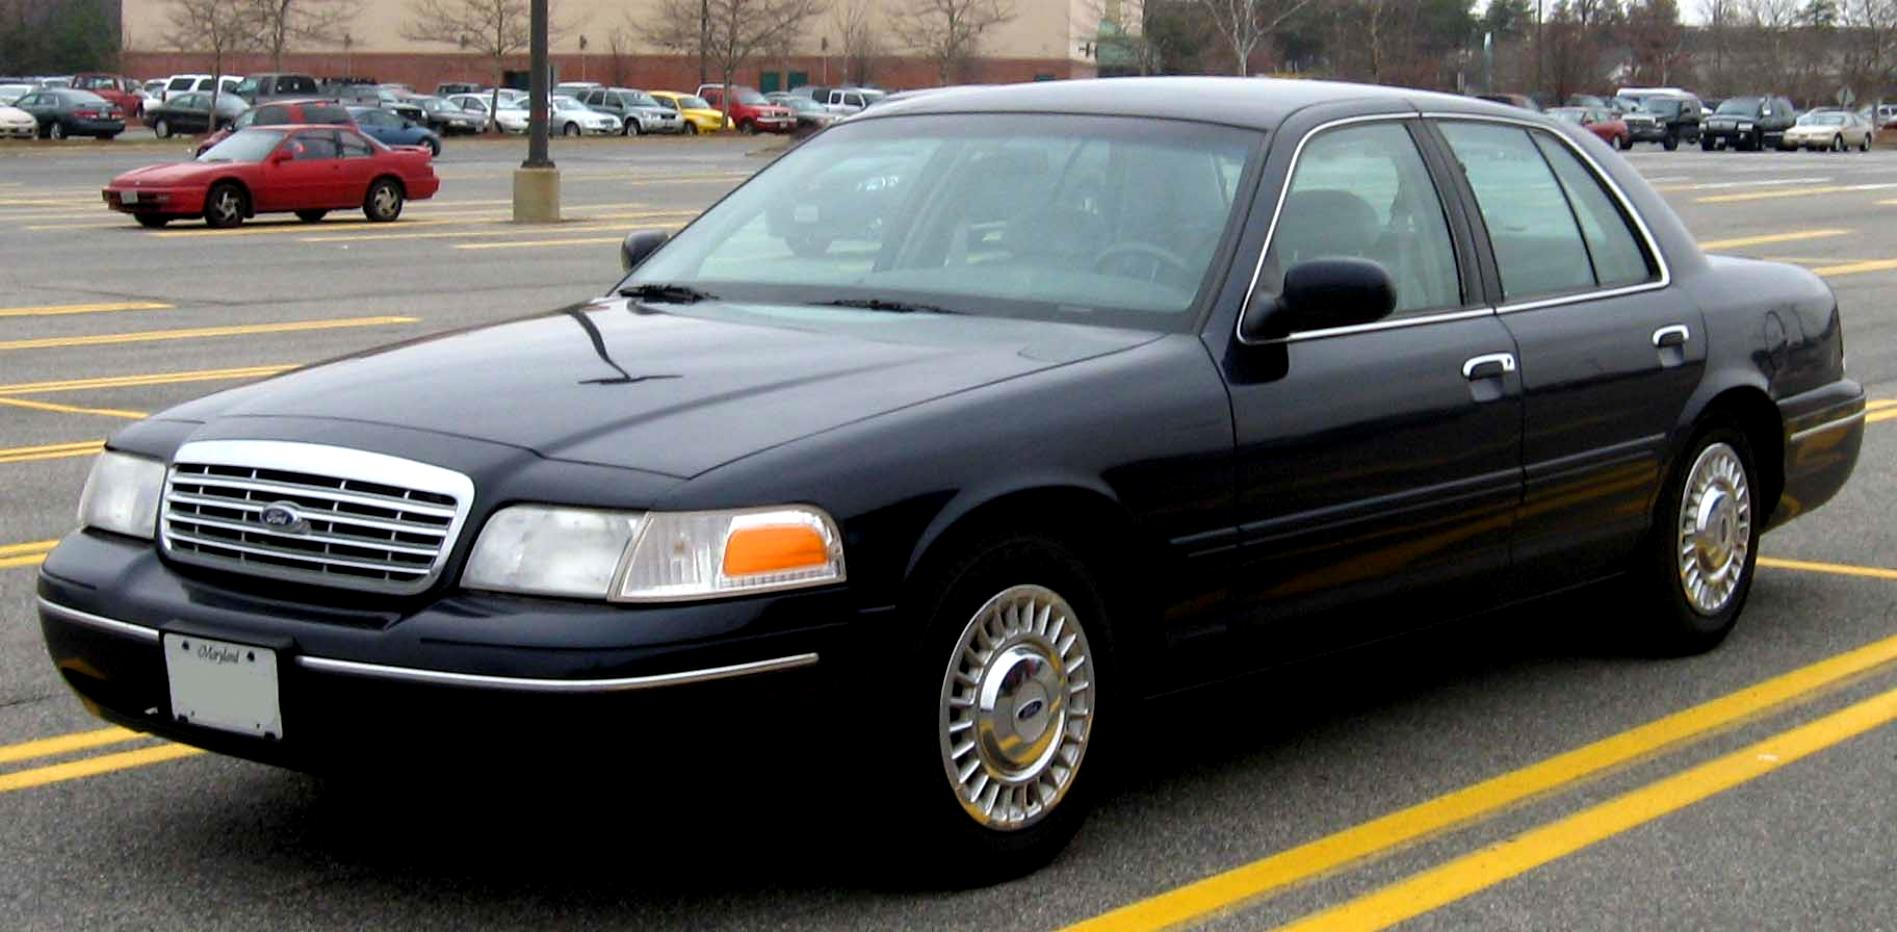 Ford Crown Victoria 1998 #5